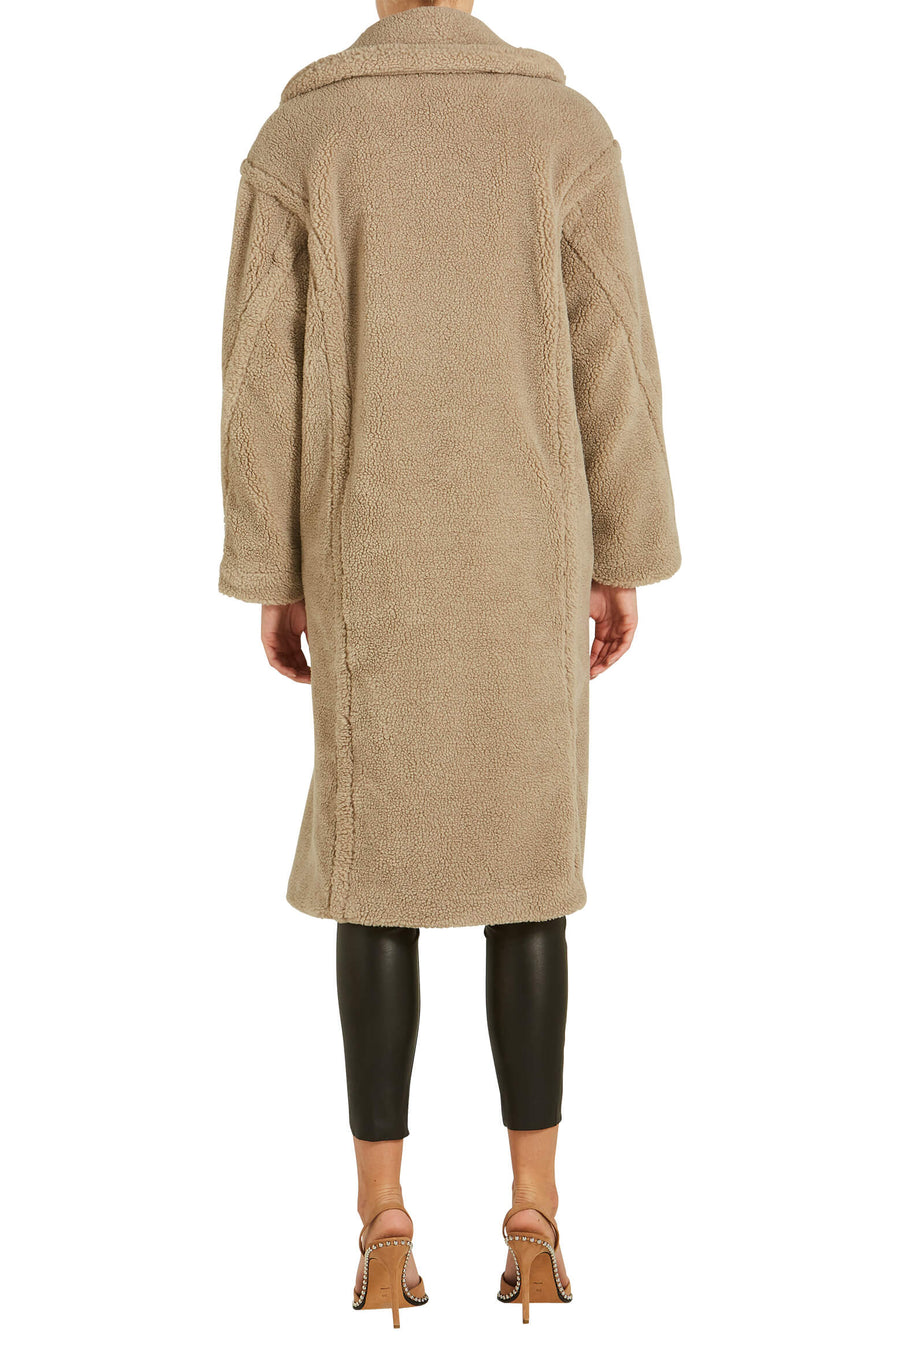 Ducie London Teddy Coat Beige from The New Trend